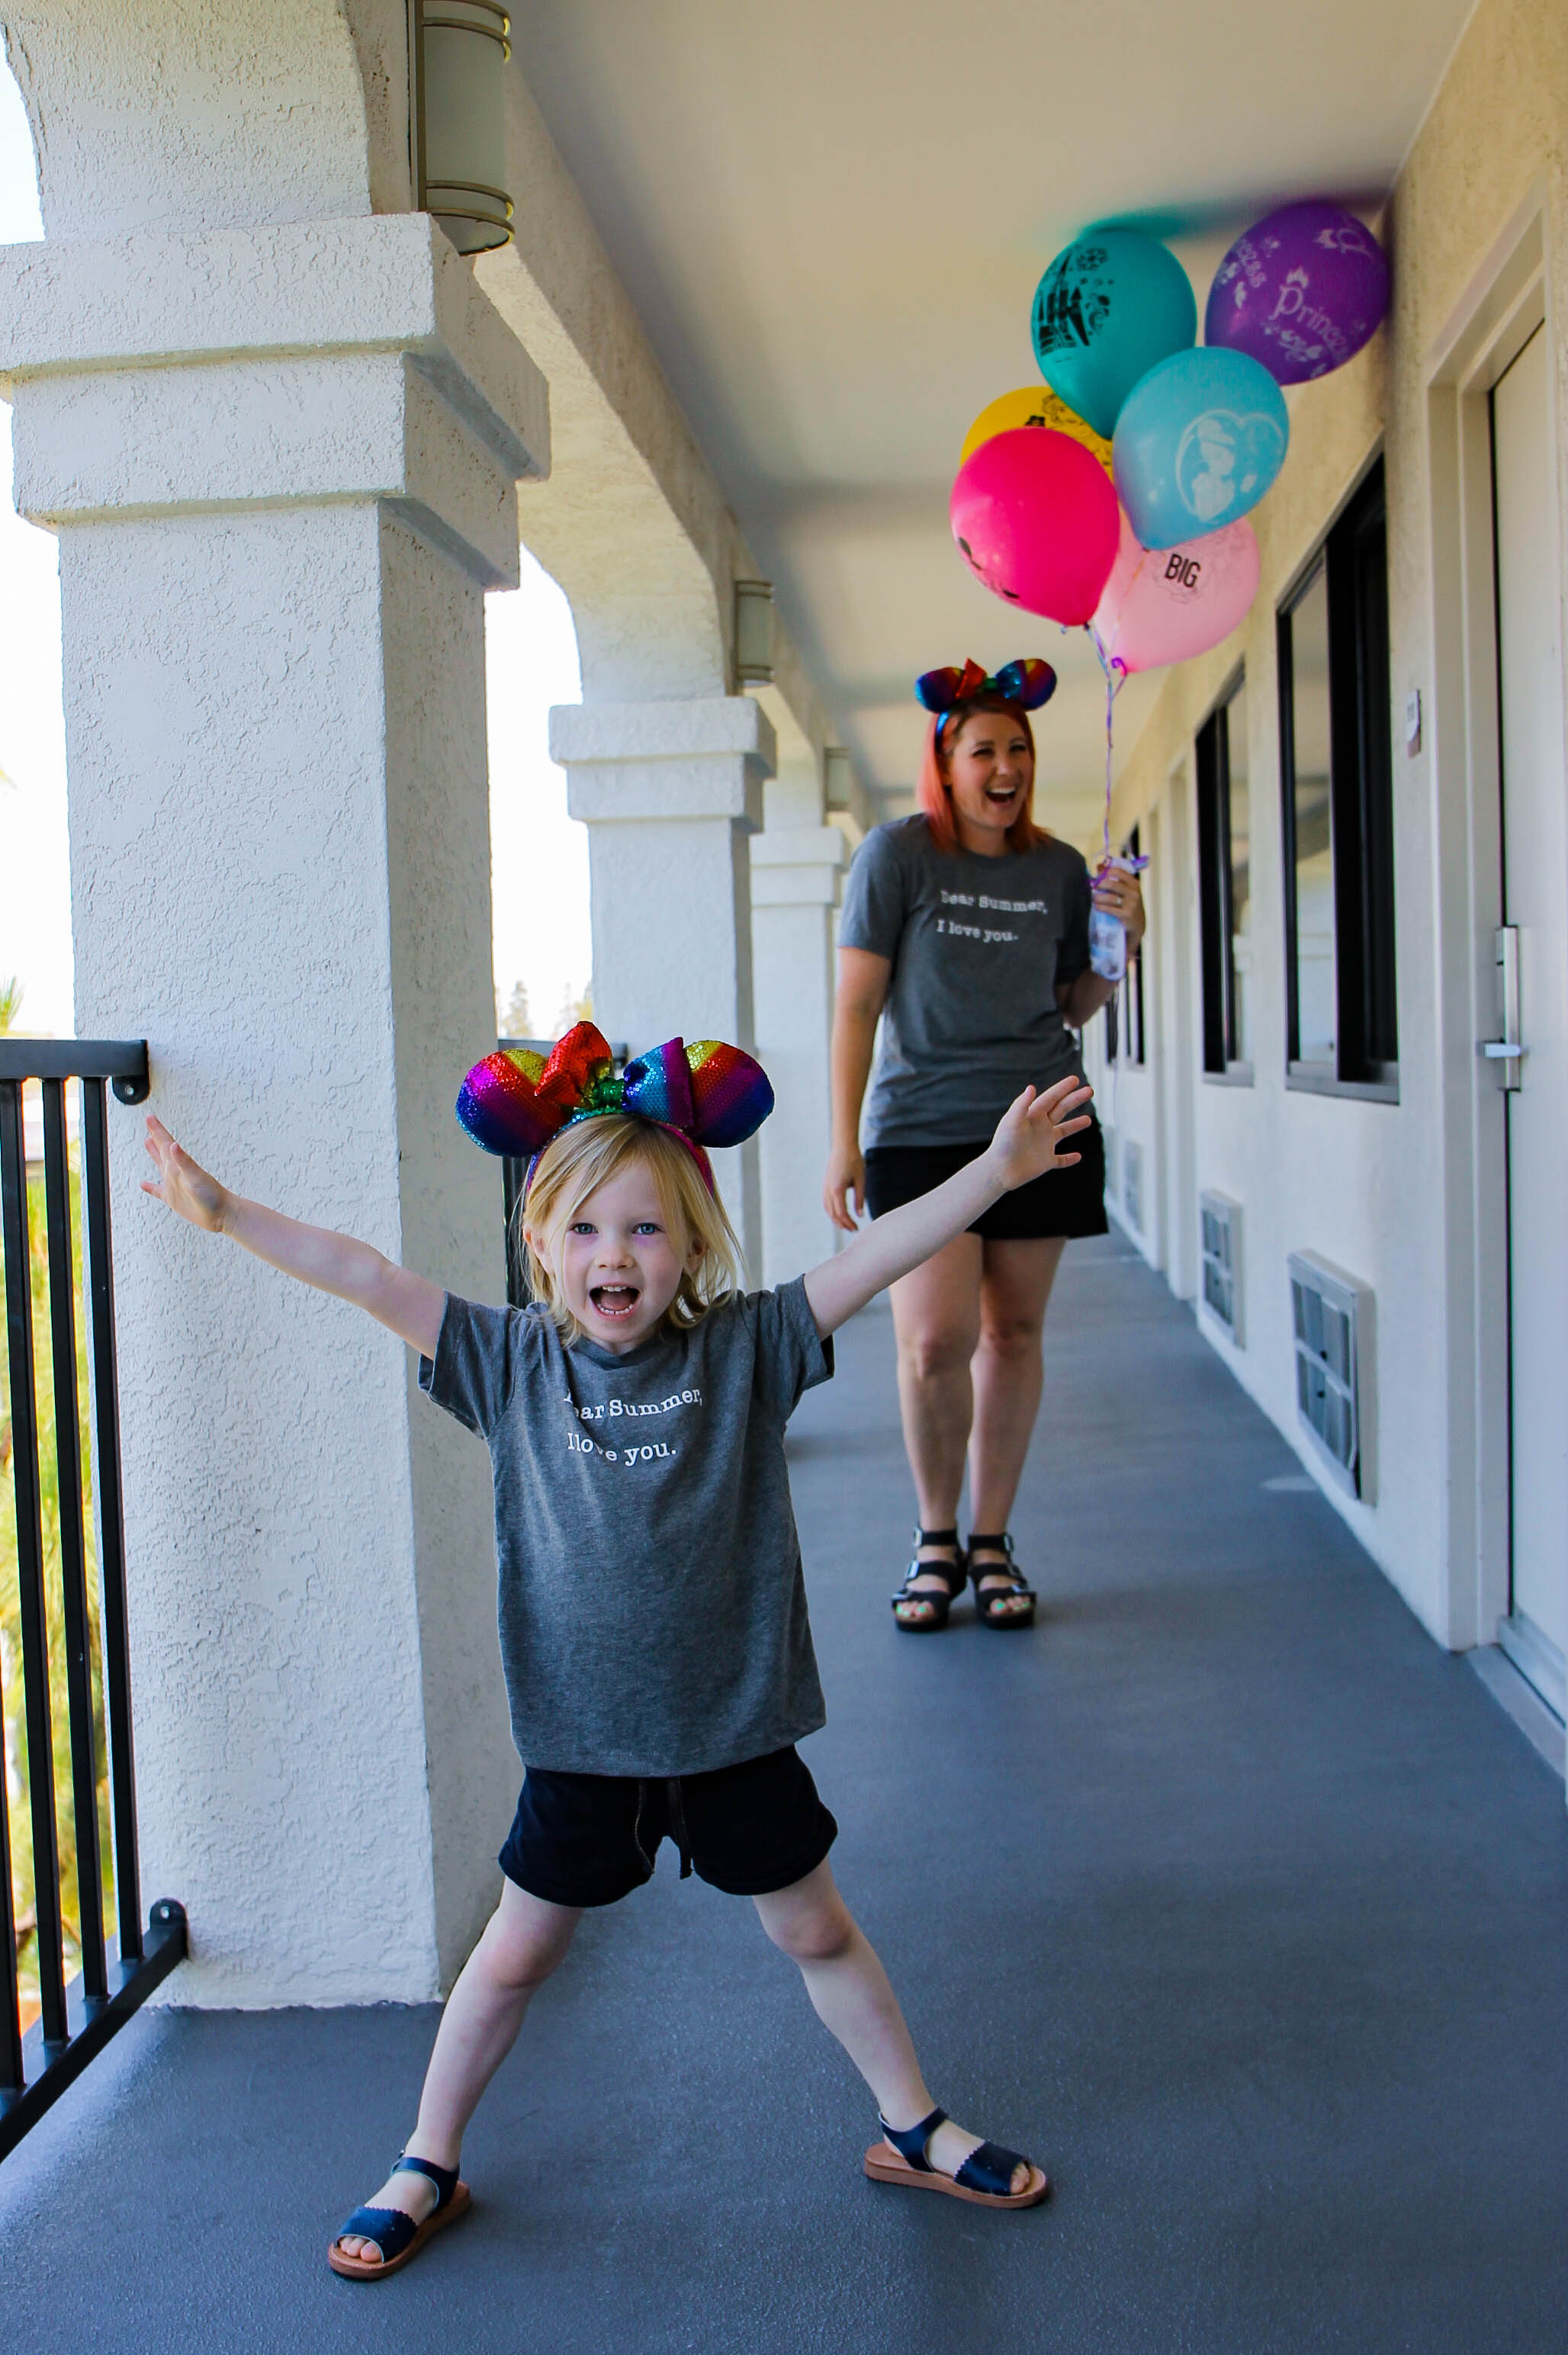 Disneyland Schedule: From rope drop to fireworks, what to do at Disneyland with a Preschooler for three days